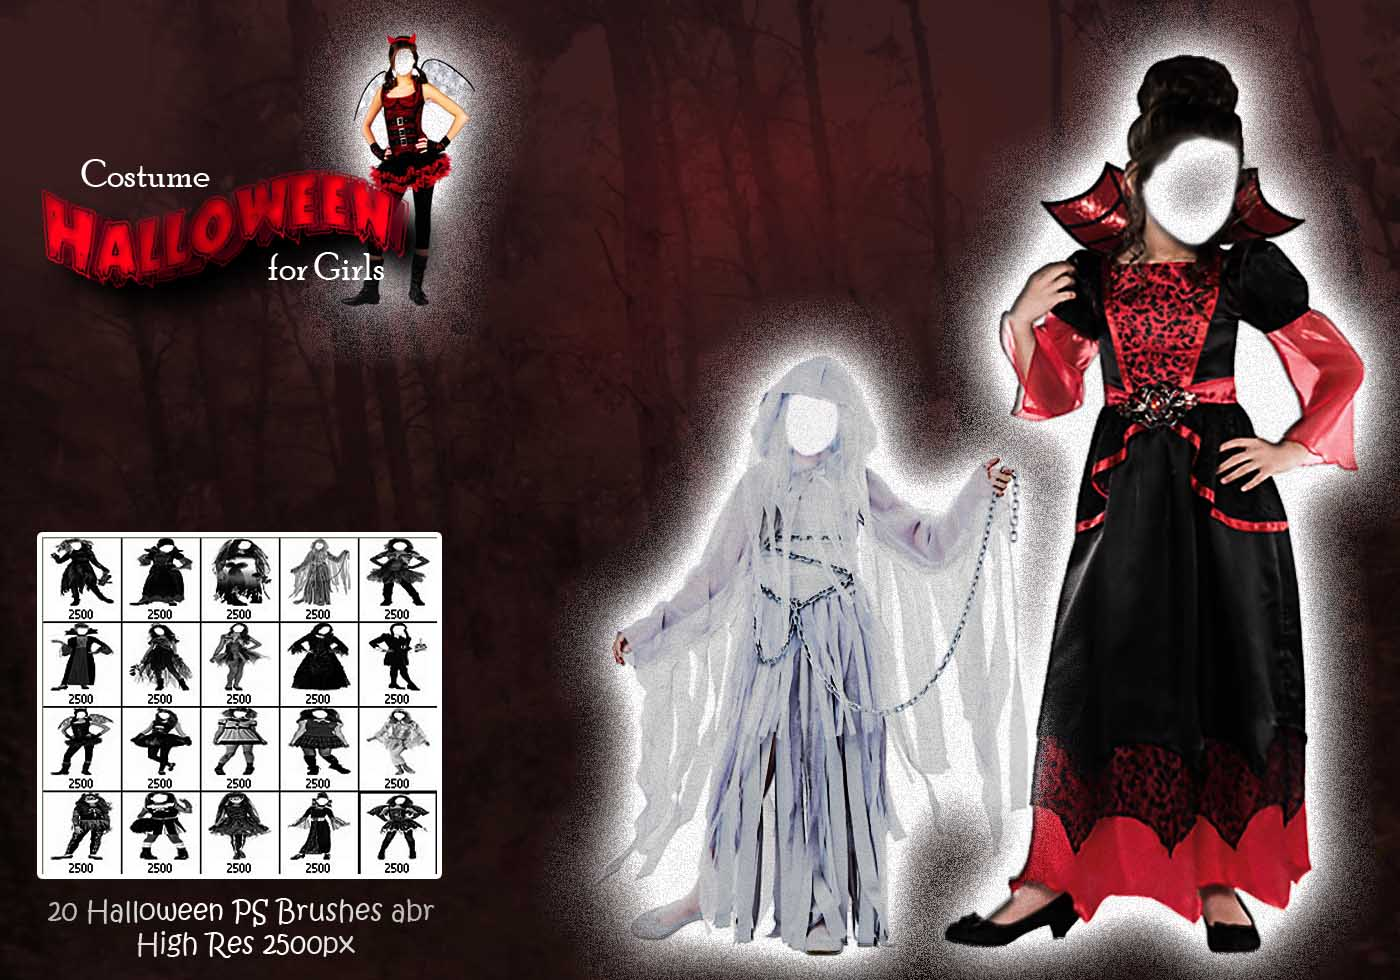 Halloween costume for girls ps brushes abr free photoshop brushes at brusheezy for Comcostume halloween homme original